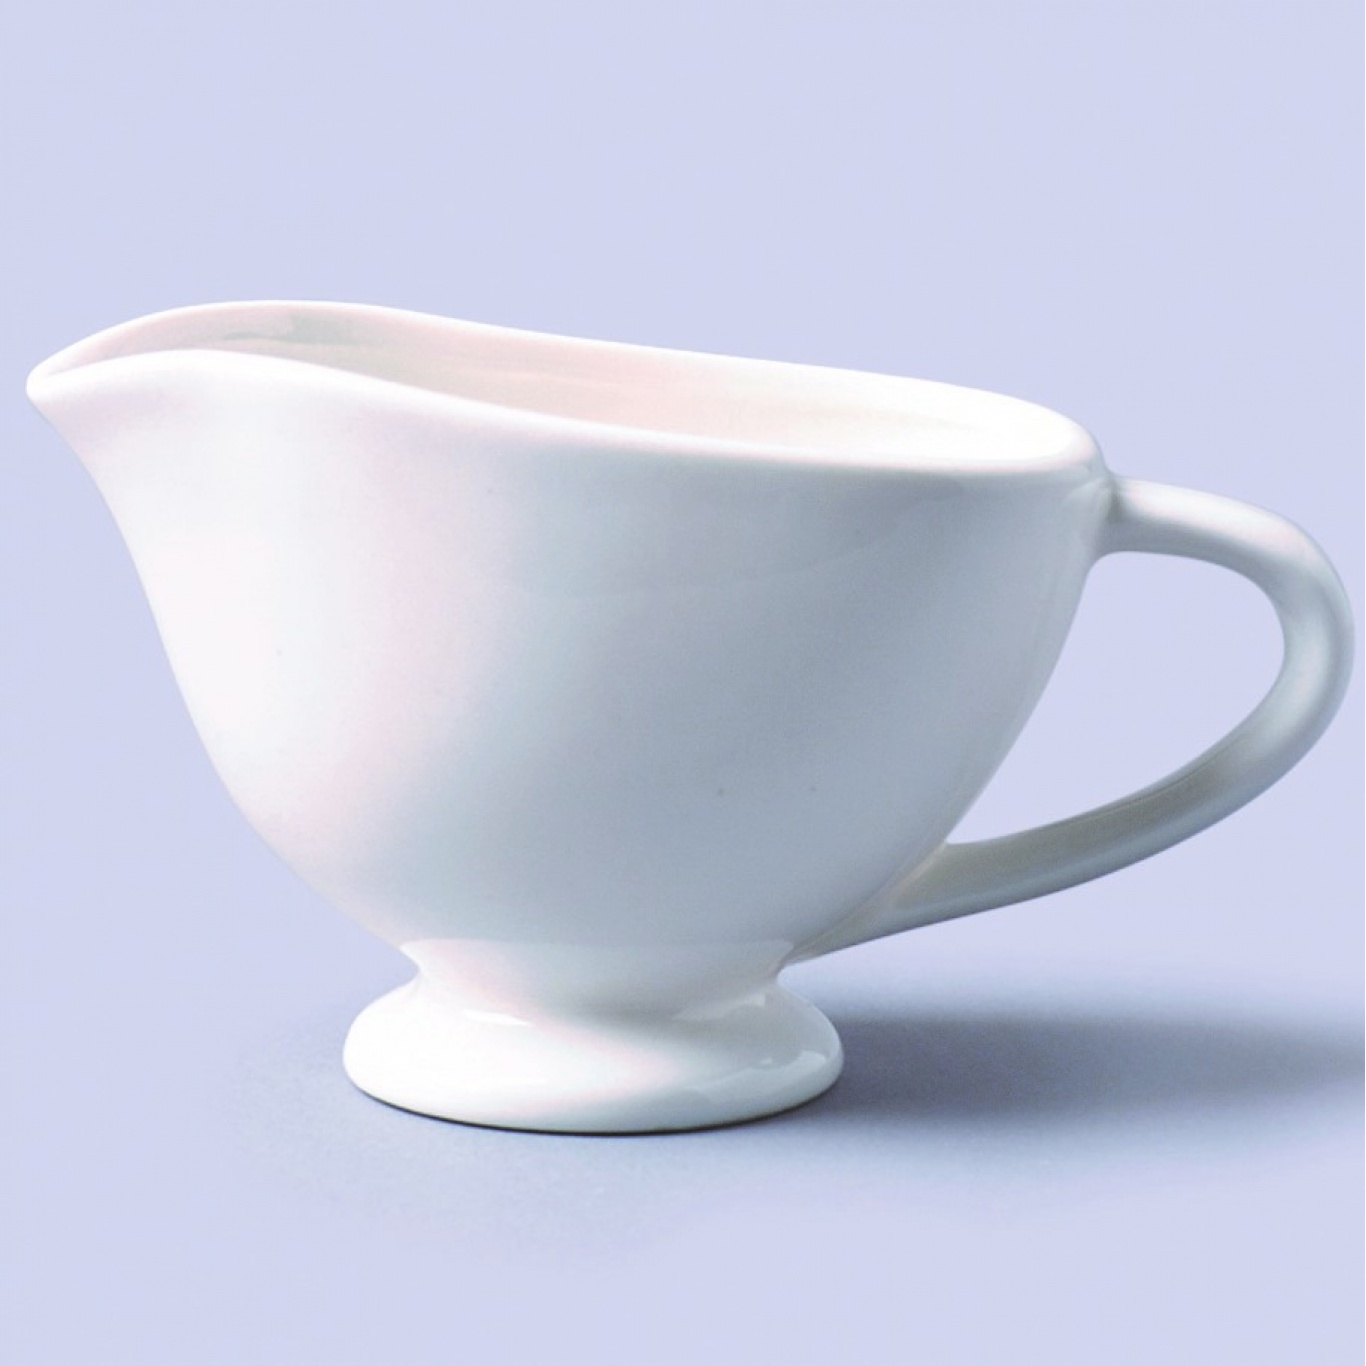 Image of Small Sauce Boat 148ml